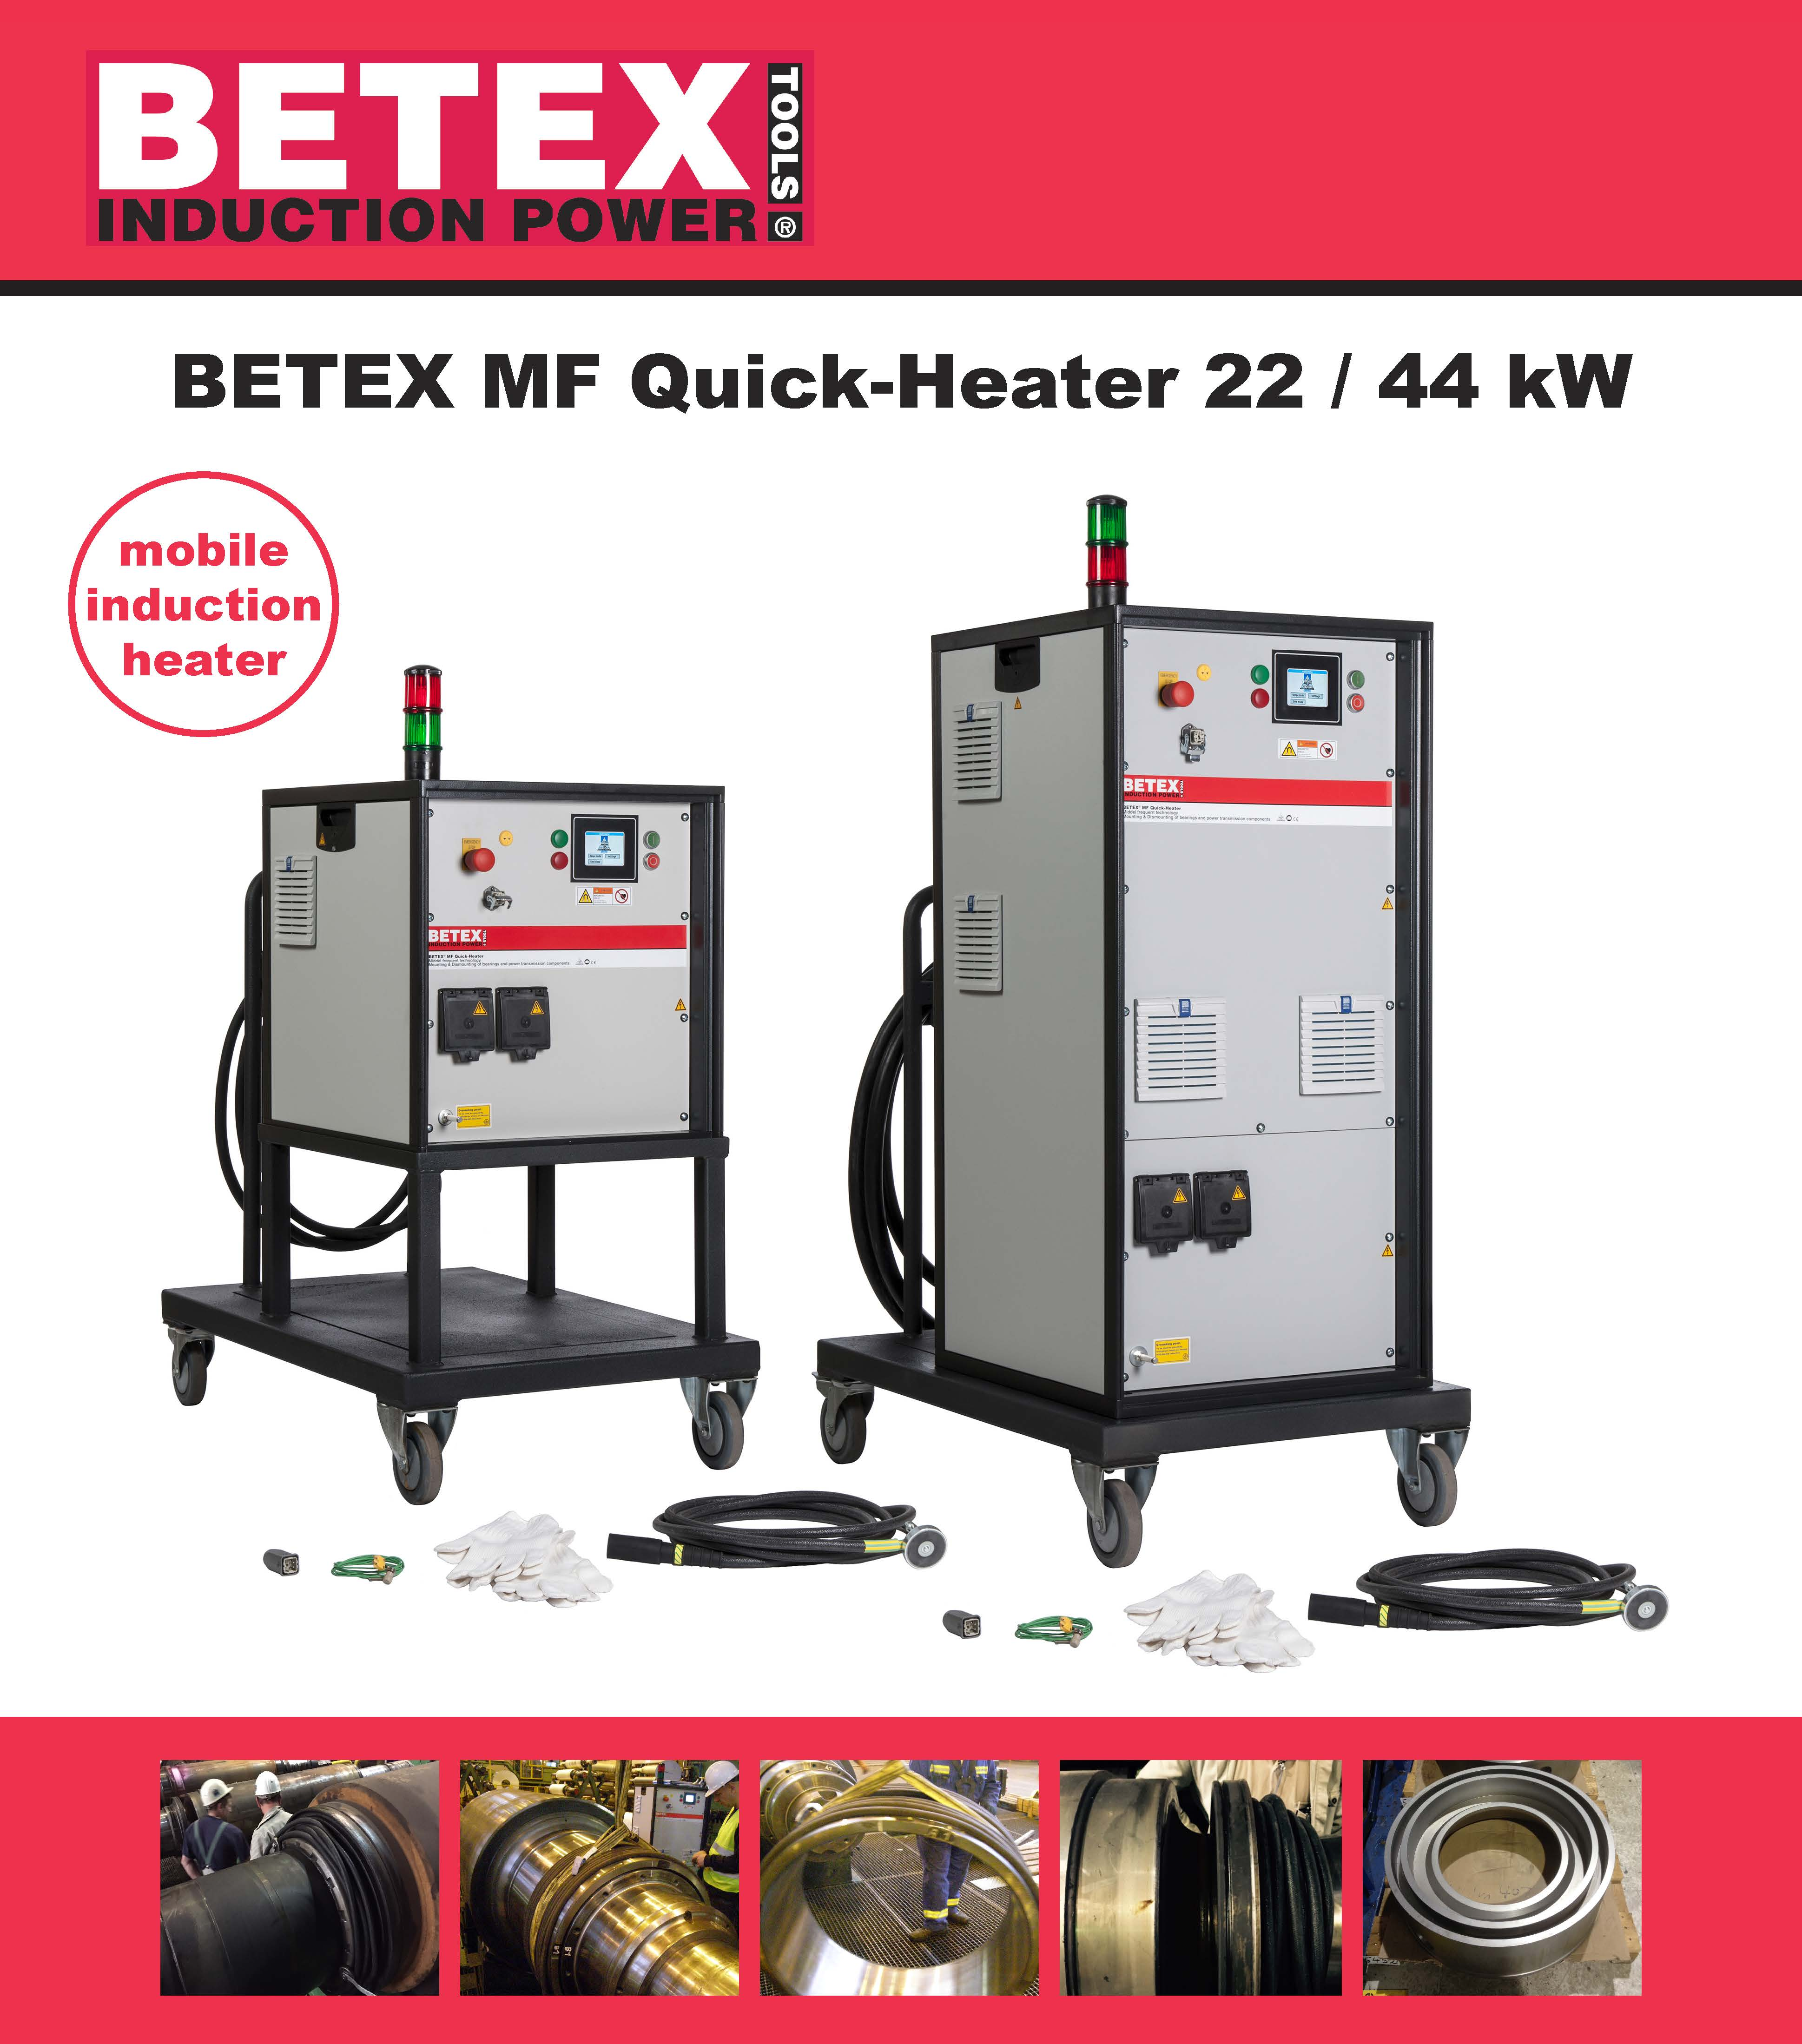 BETEX MF Quick-Heaters 22 & 44kW - Bega Special Tools